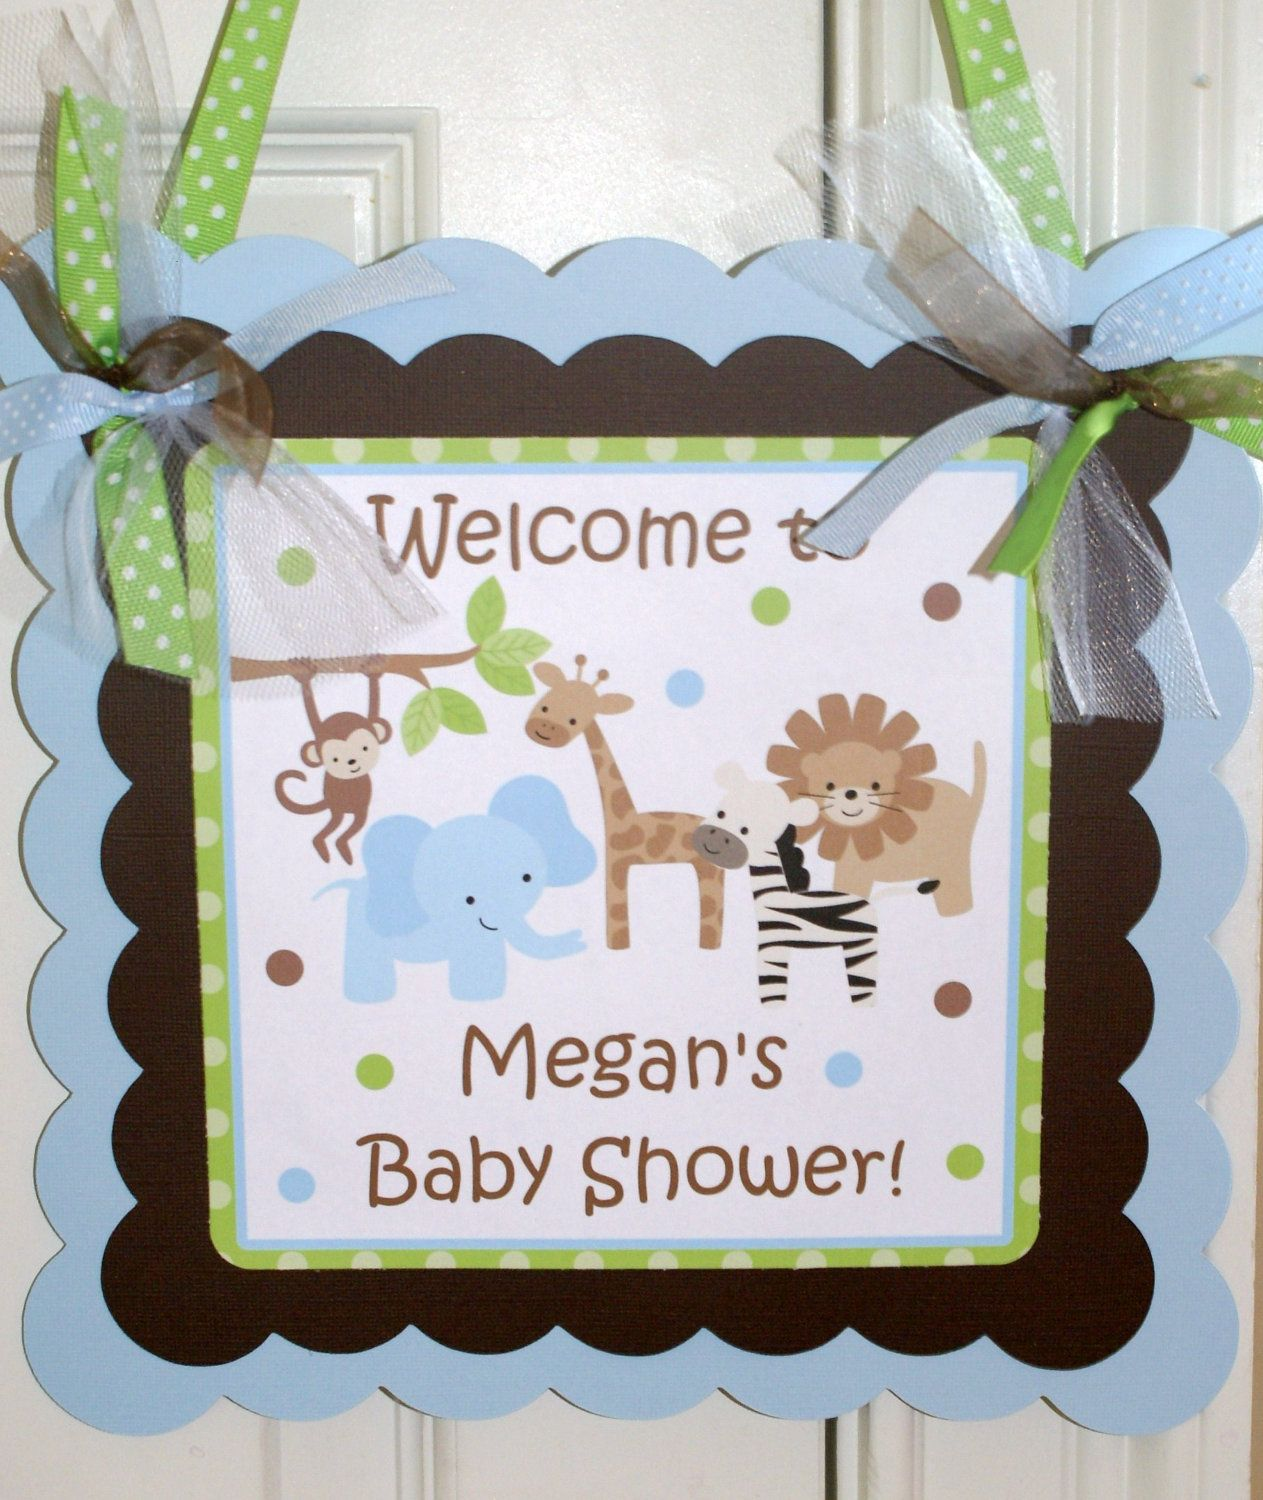 NEW....Safari Baby Shower and Safari Birthday Party Welcome Door Sign by Kidfully Celebrations. $12.00, via Etsy.